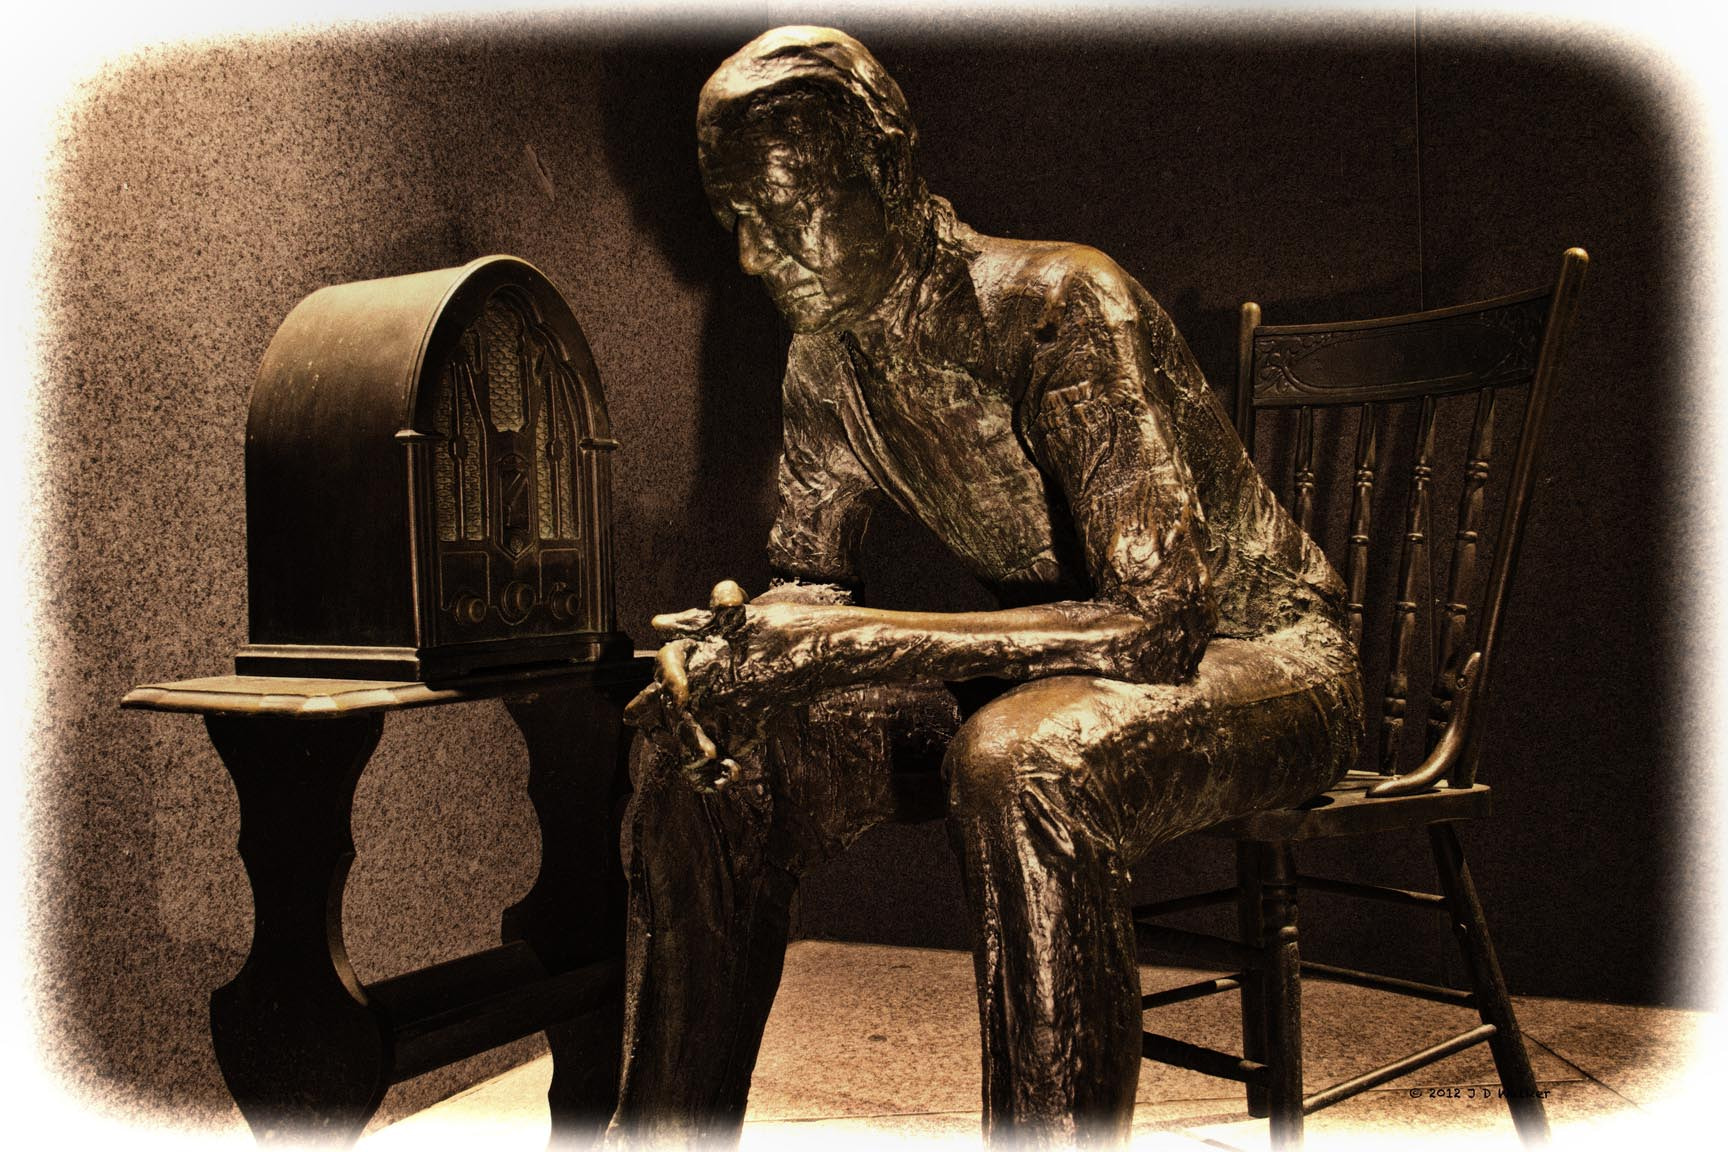 Photograph Hoping for Good News, FDR Memorial, Washington DC by Jim Walker on 500px